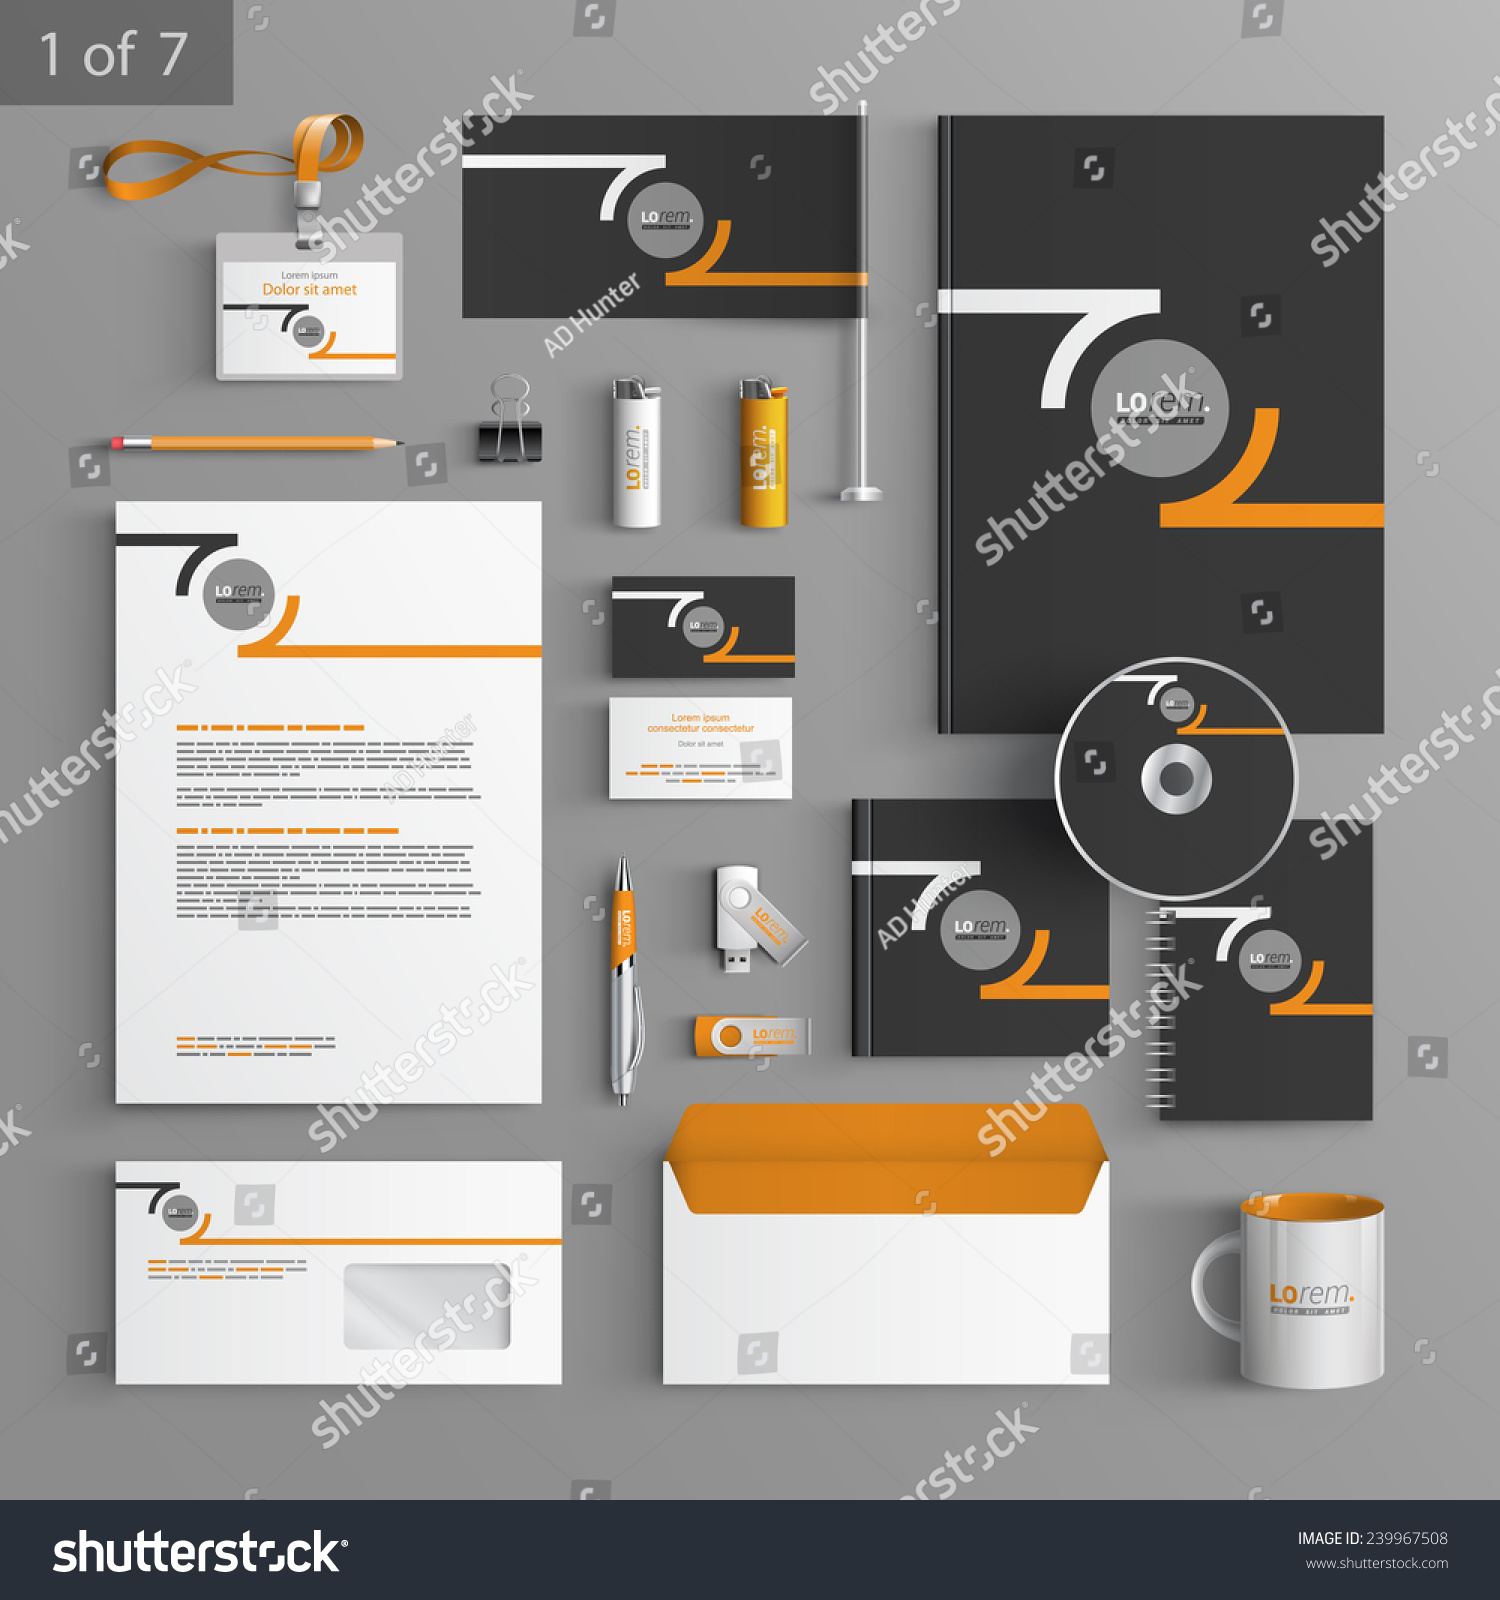 Black Stationery Template Design Orange Round Stock Vector 239967508 ...